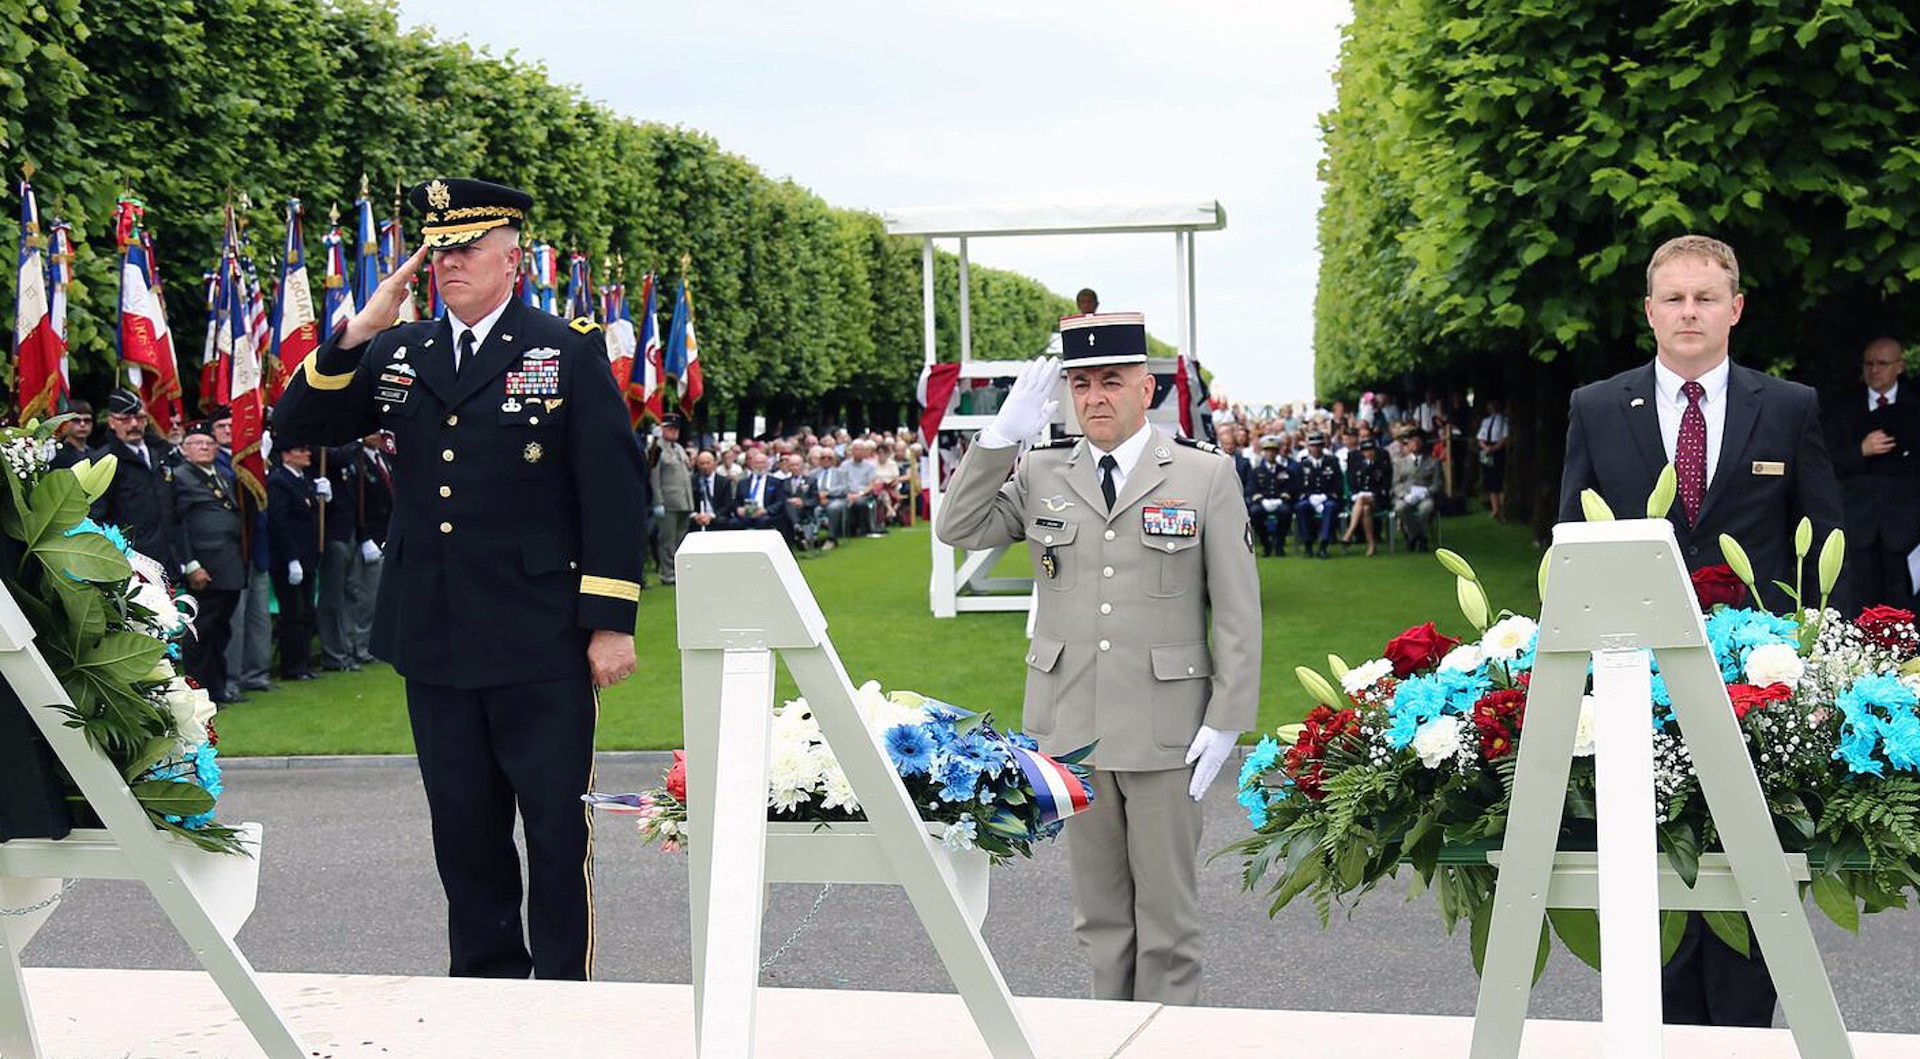 Three men standing in a cemetery. Two military members saluting.